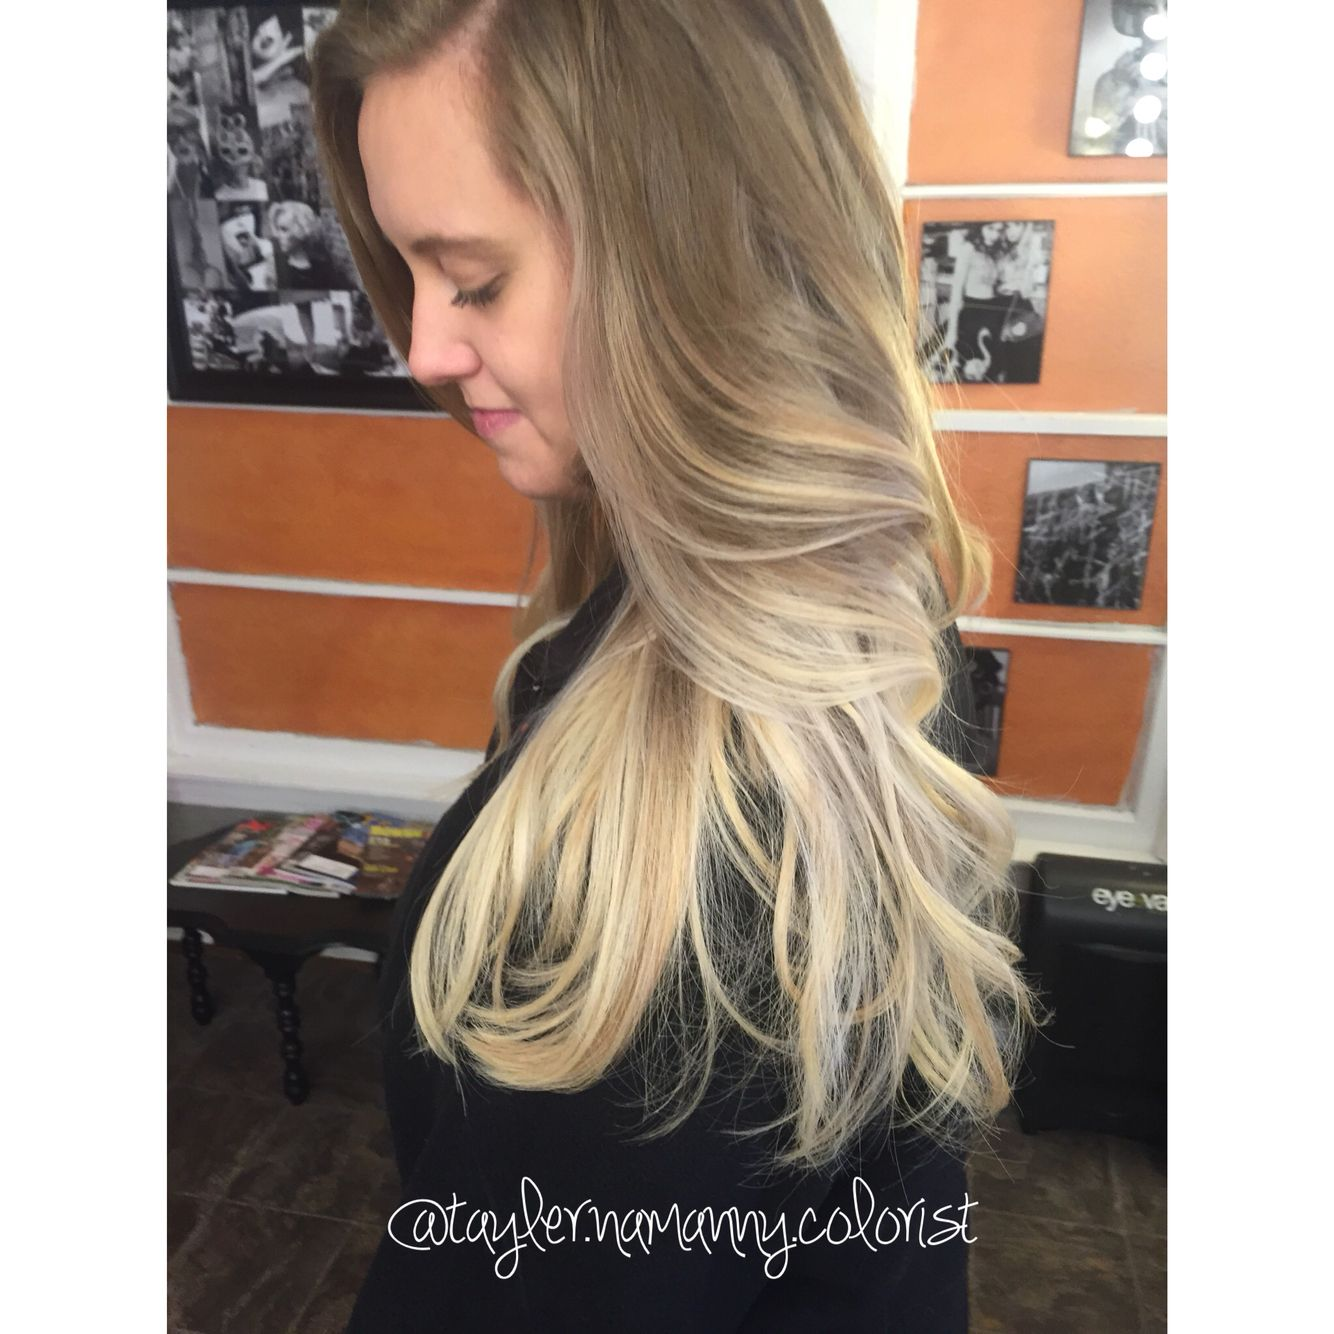 Uncategorized tri color hair highlights pictures can ihighlight gray hair grey hair gets hotter things that make you - Long Hair Balayage Ombre Blonde By Tayler Namanny